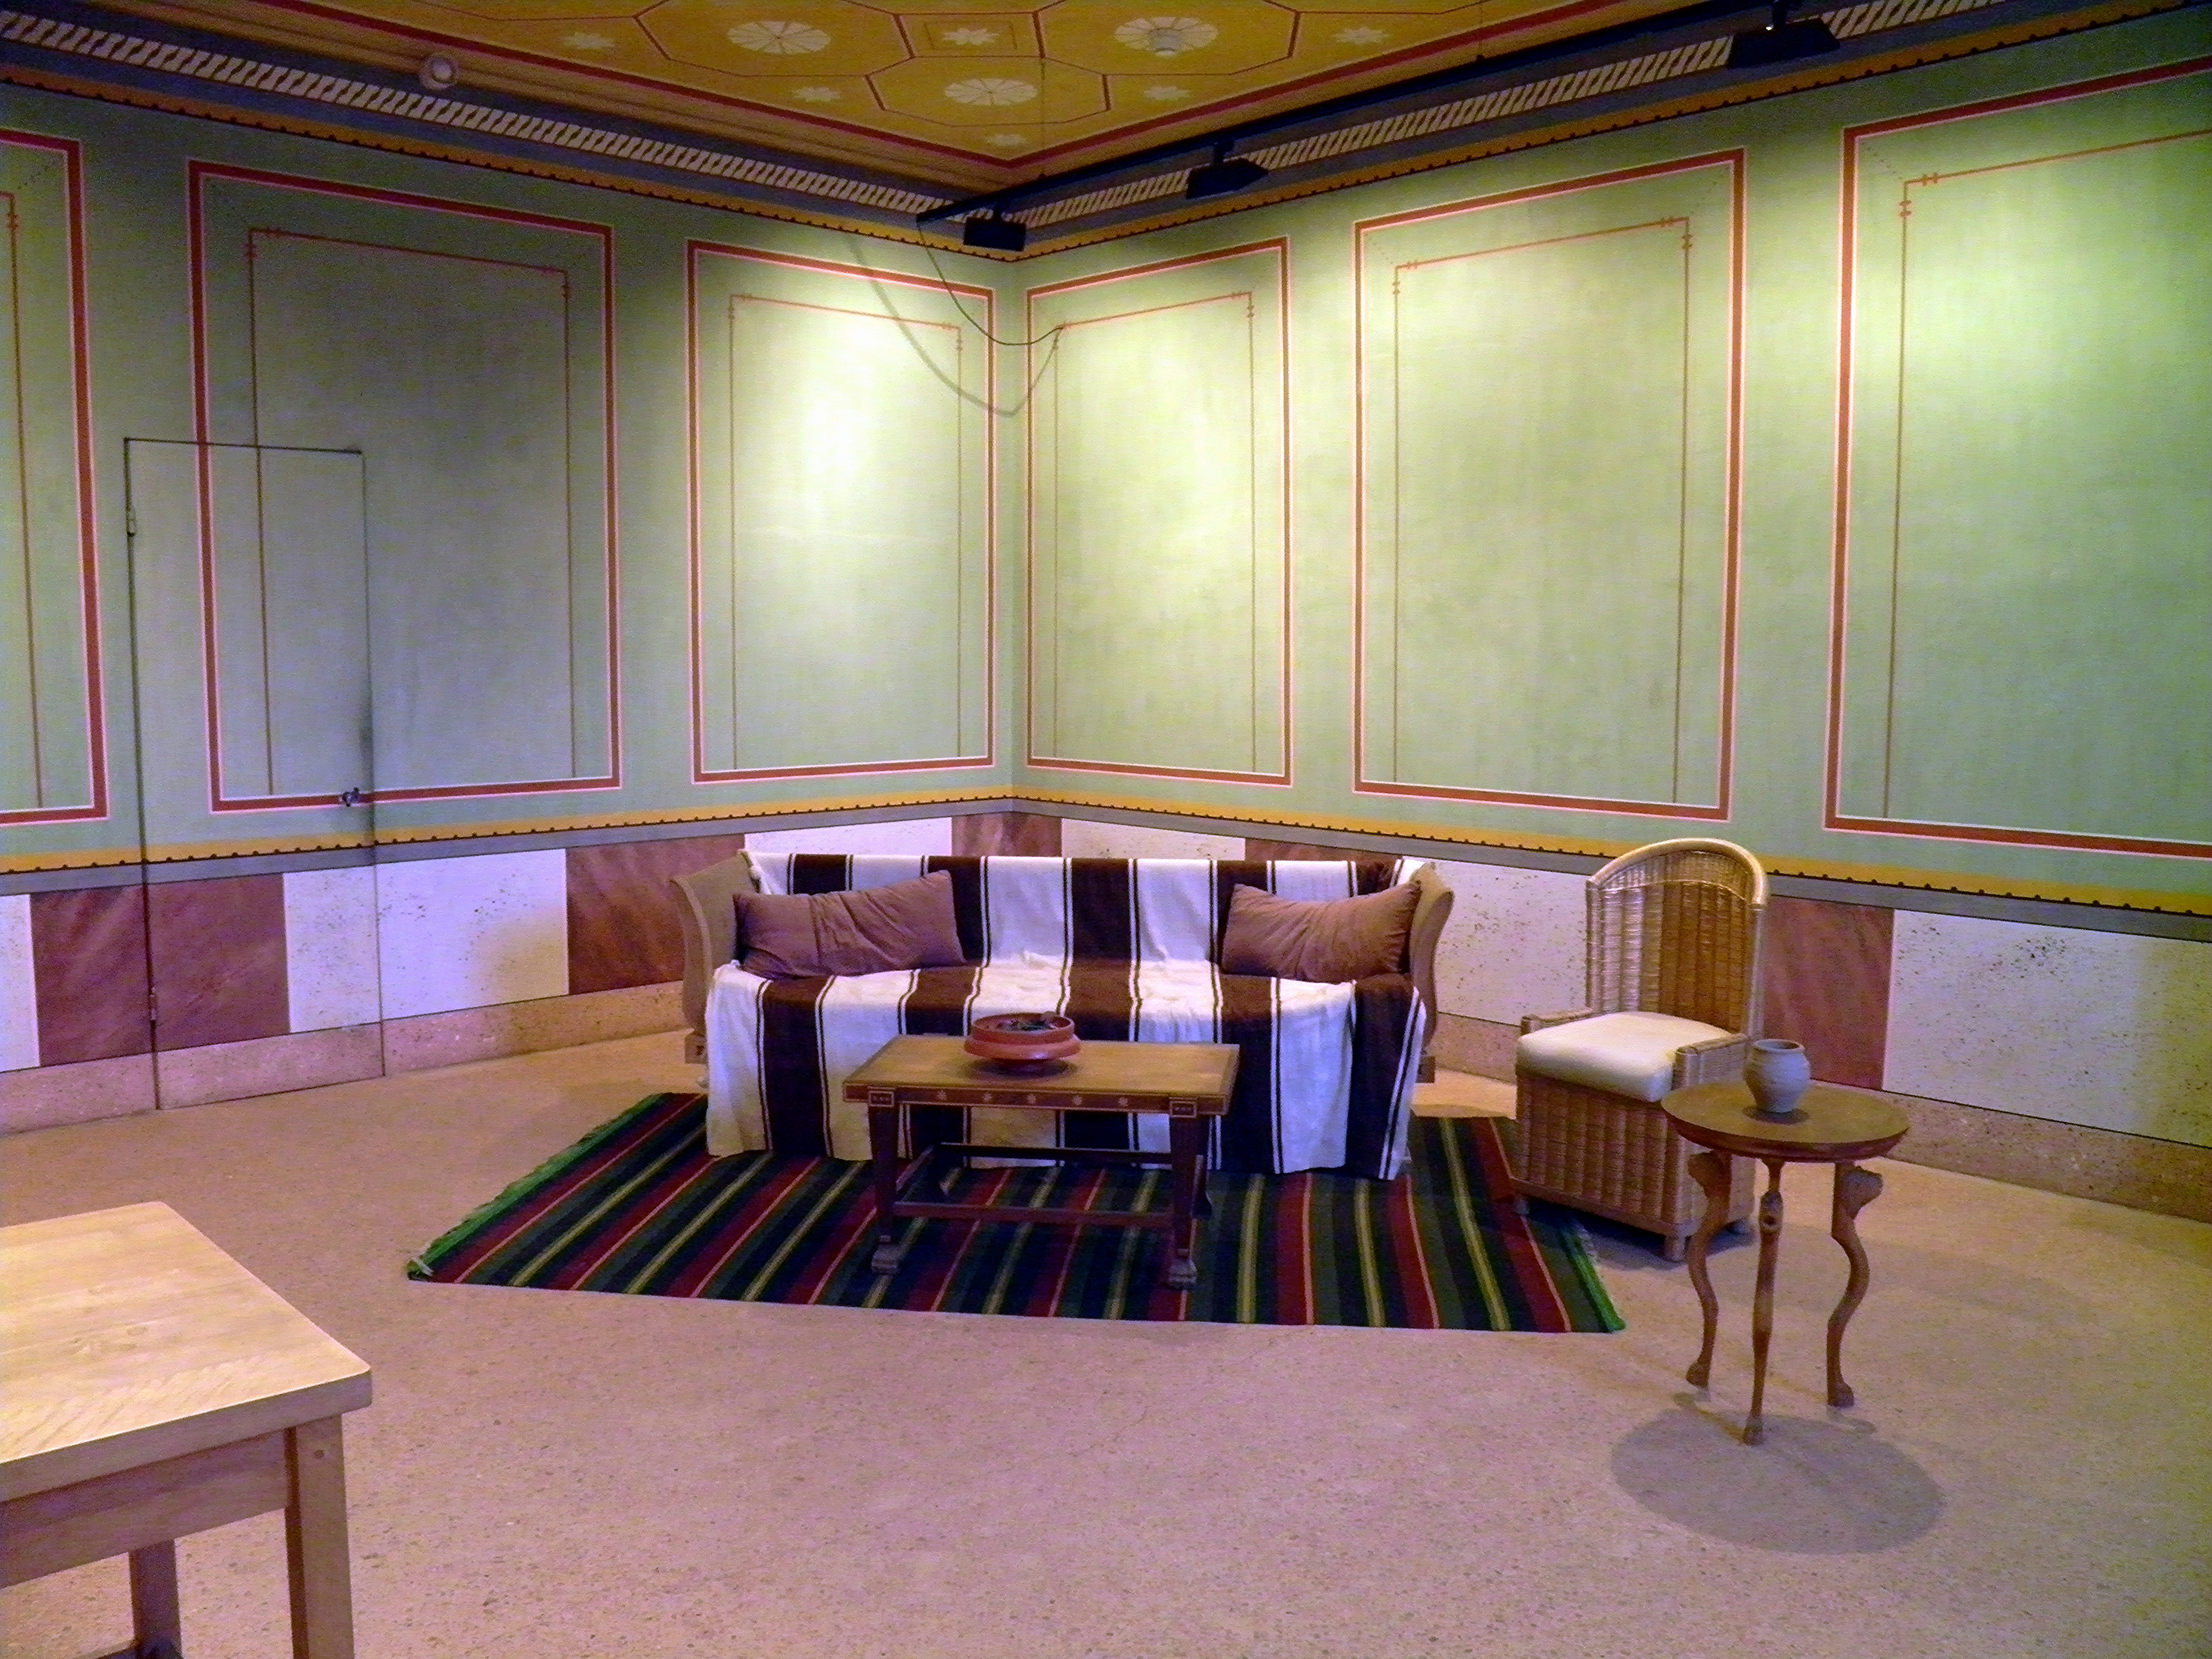 FileReconstructed Roman Furniture And Mural Painting In